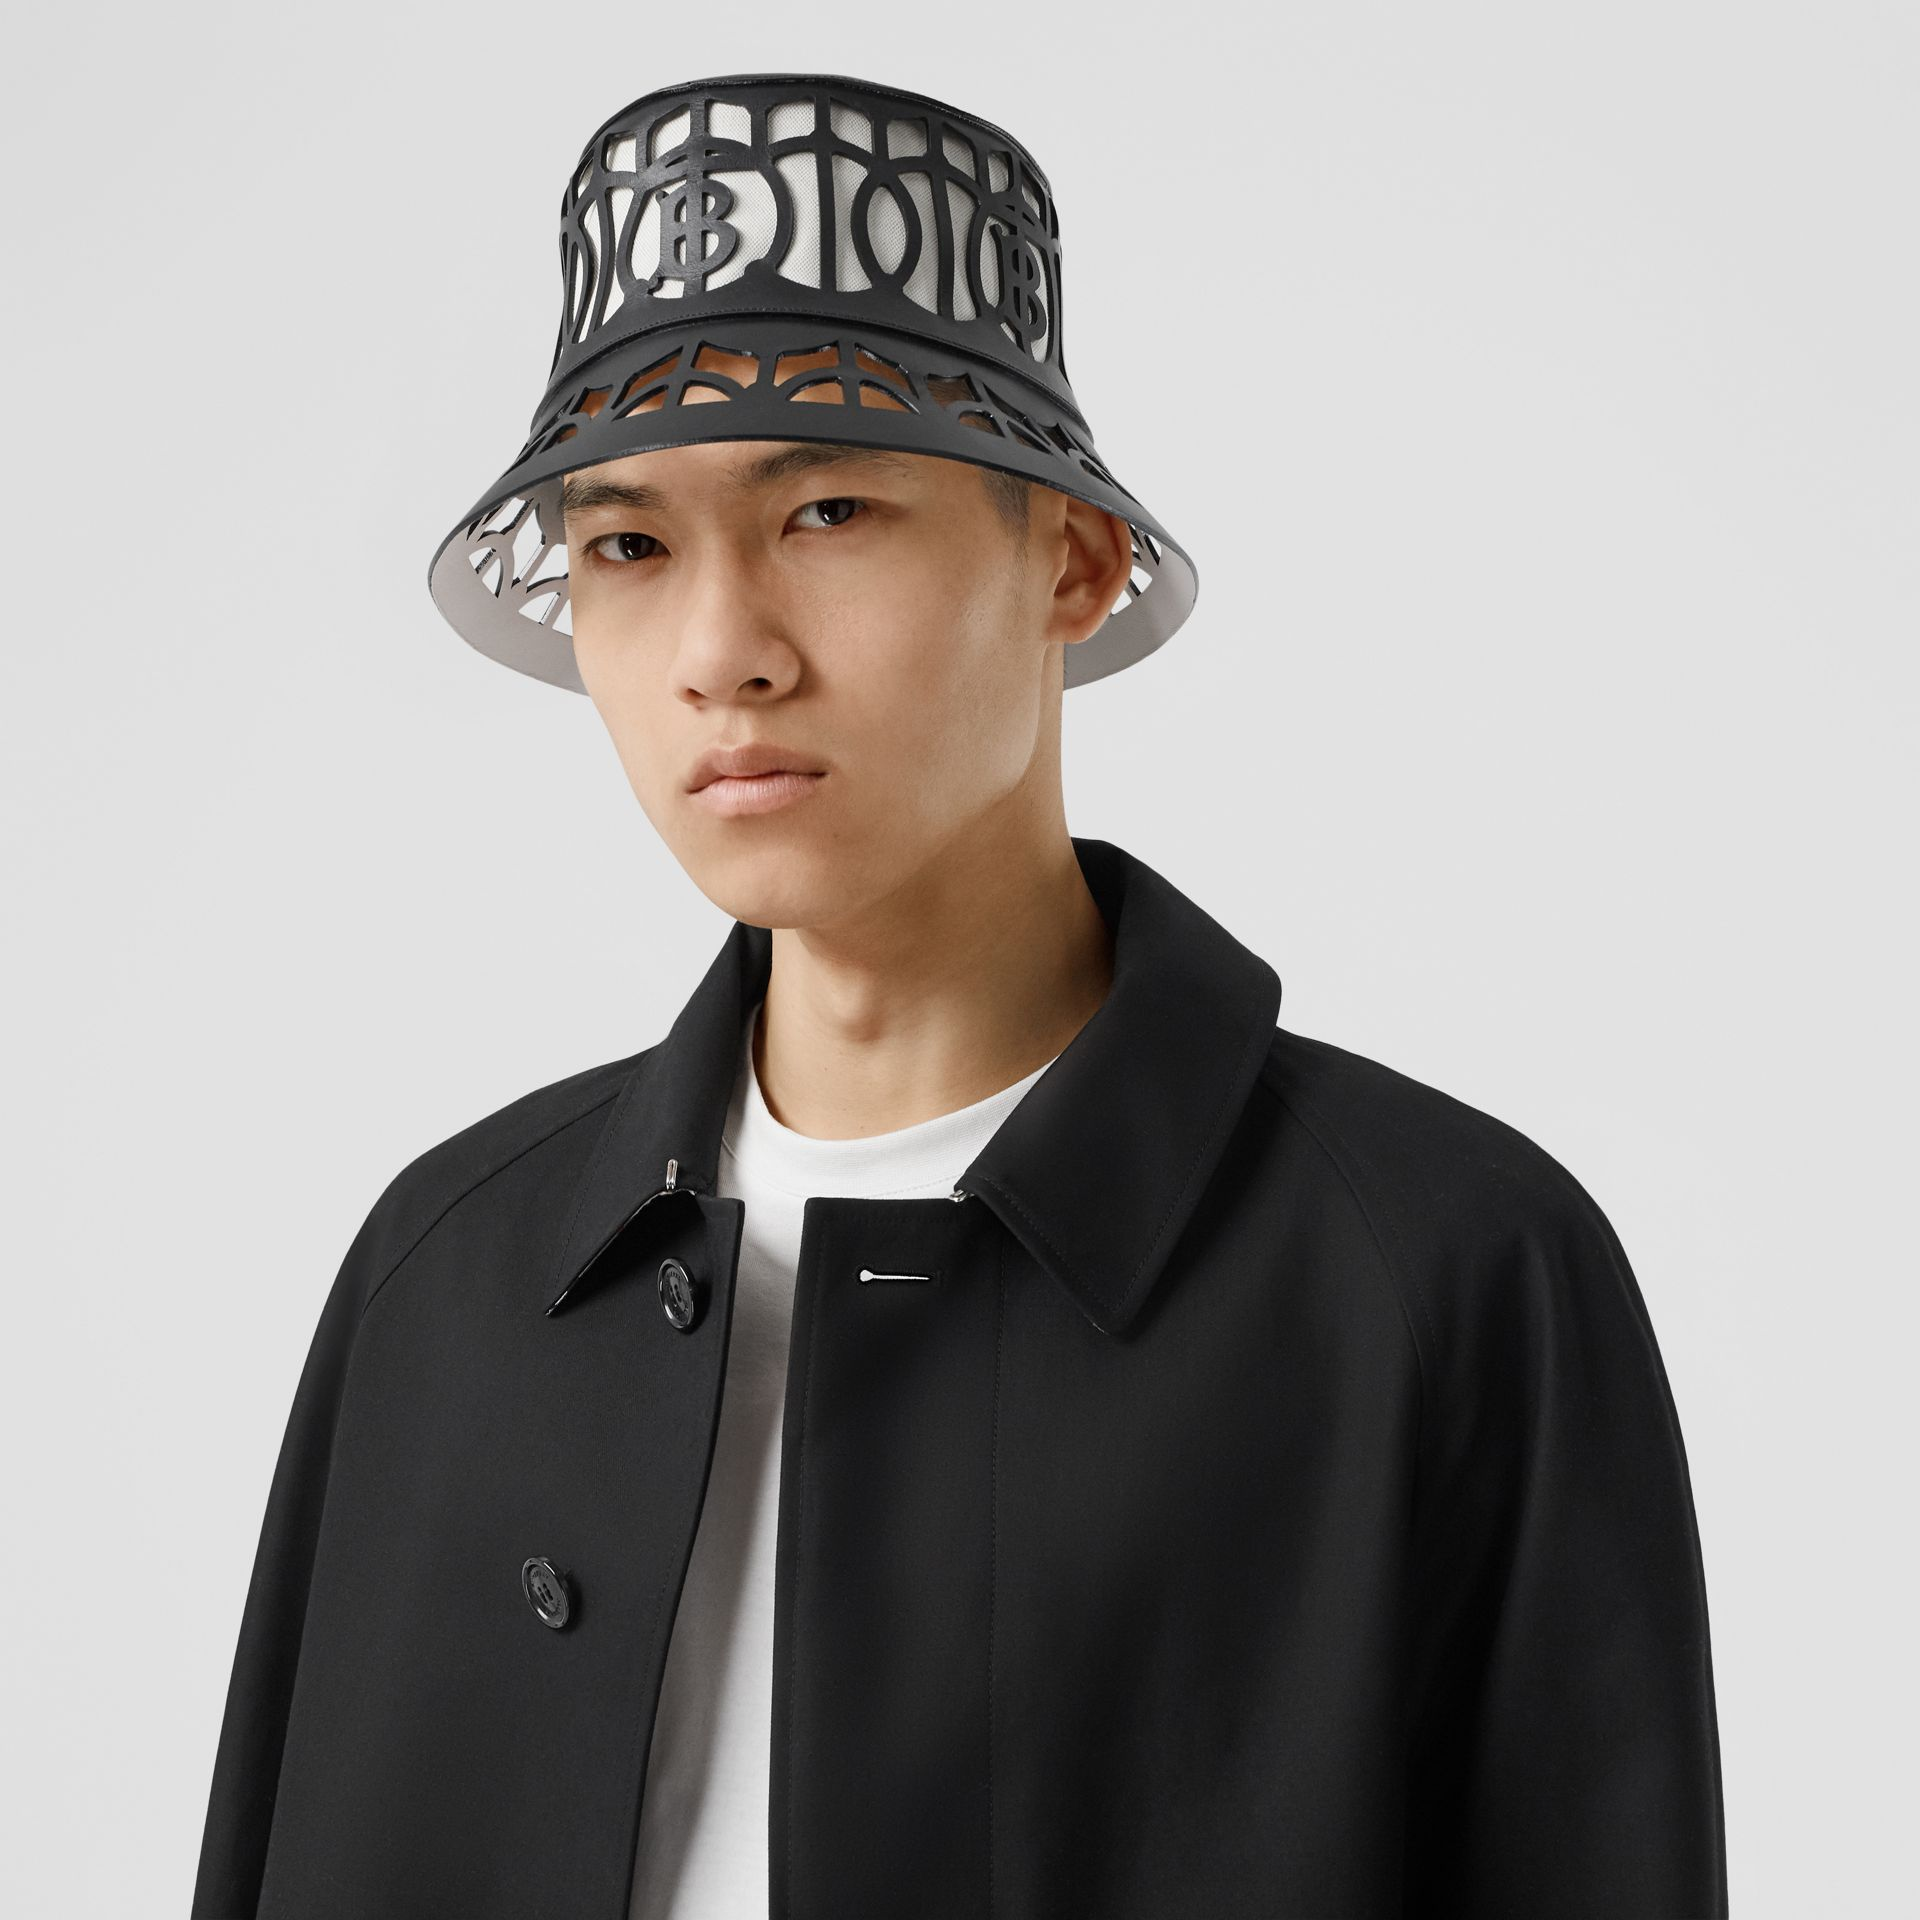 Monogram Motif Cut-out Leather Bucket Hat in Black   Burberry United Kingdom - gallery image 3